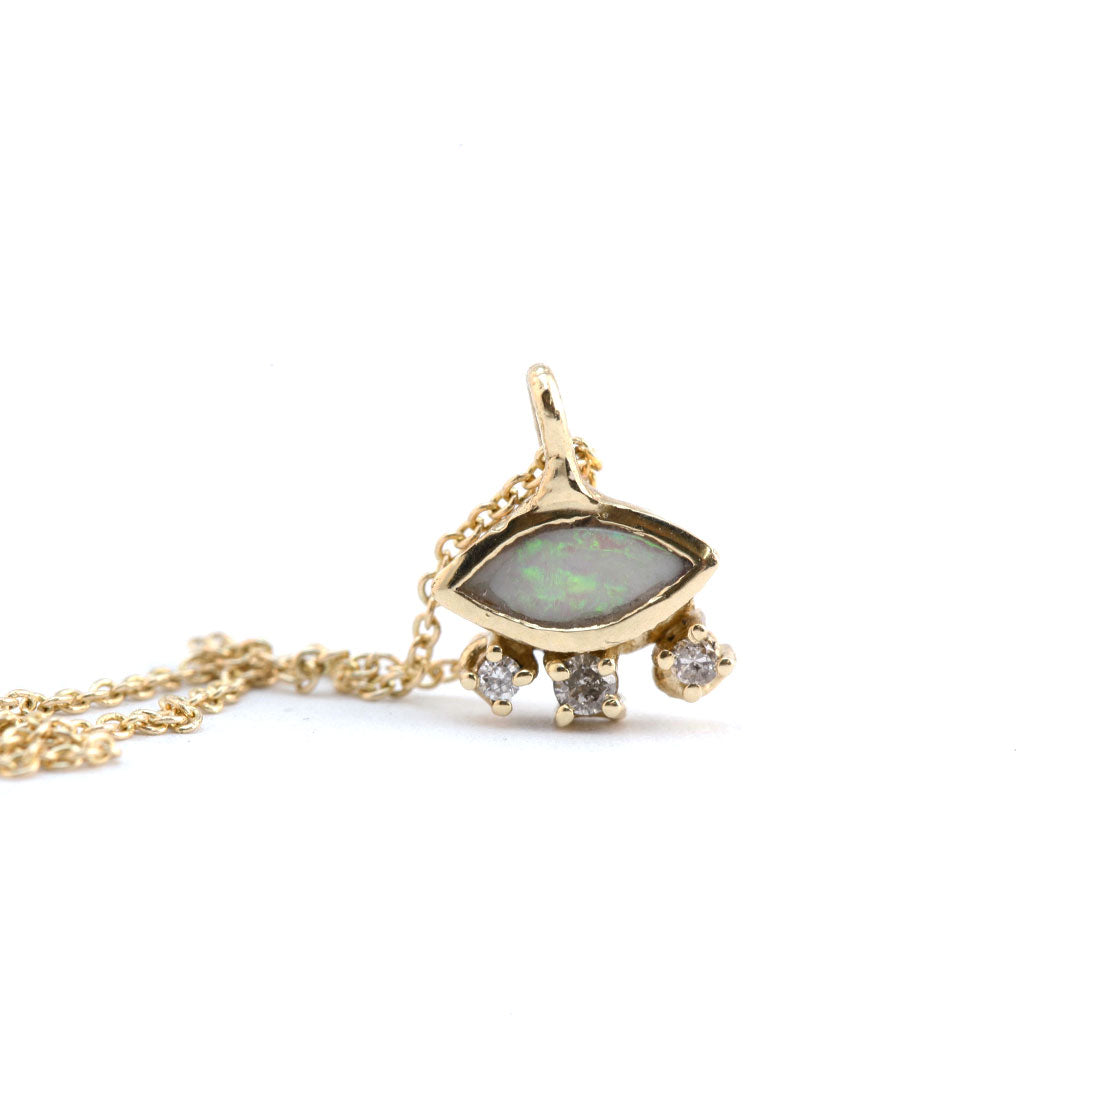 Marquis cut opal pendant in gold with diamonds on 9ct yellow gold chain, Custom bespoke handmade necklace.